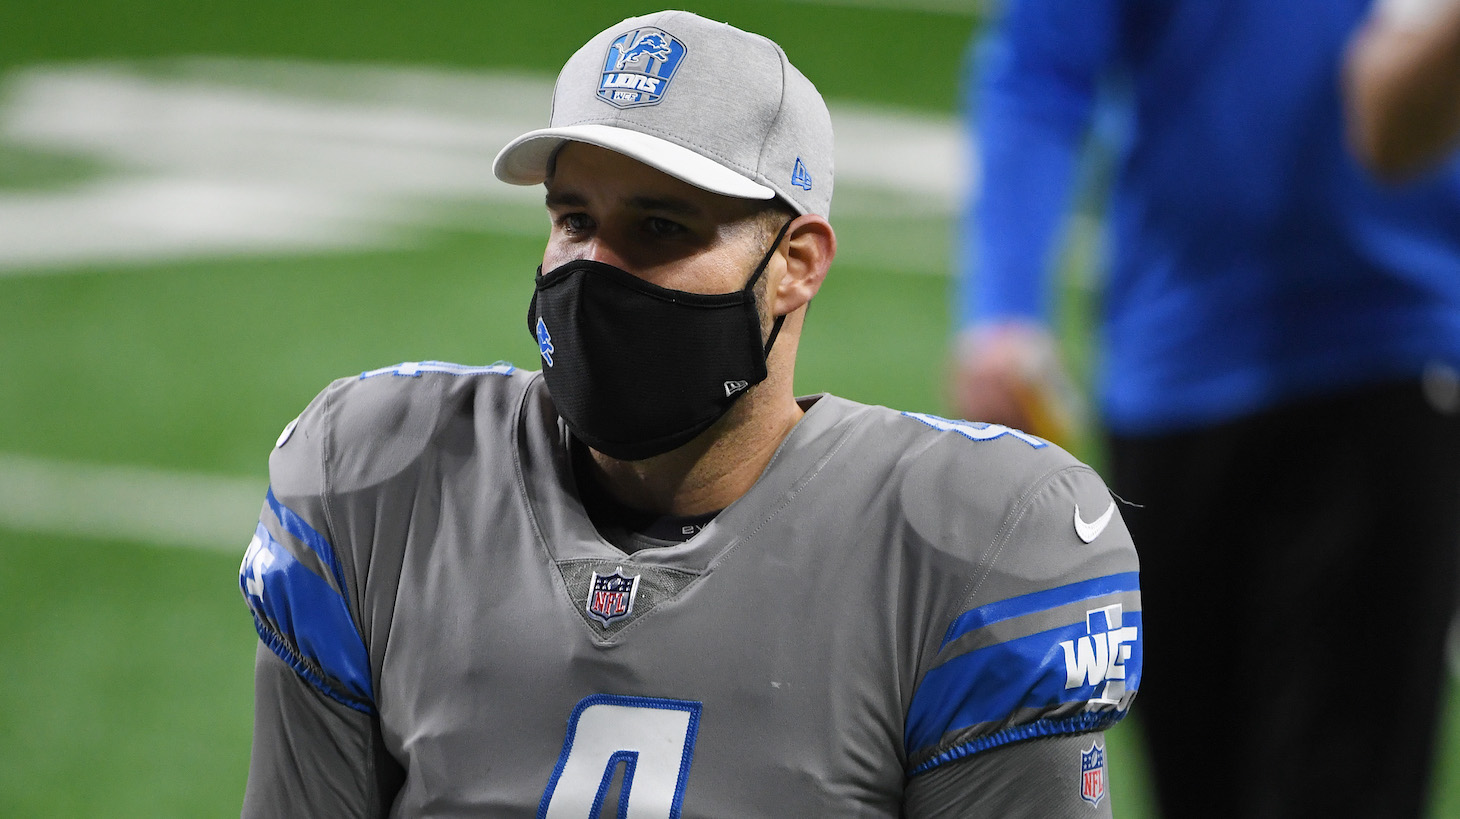 DETROIT, MICHIGAN - DECEMBER 26: Chase Daniel #4 of the Detroit Lions heads off the field following a game against the Tampa Bay Buccaneers at Ford Field on December 26, 2020 in Detroit, Michigan. (Photo by Nic Antaya/Getty Images)